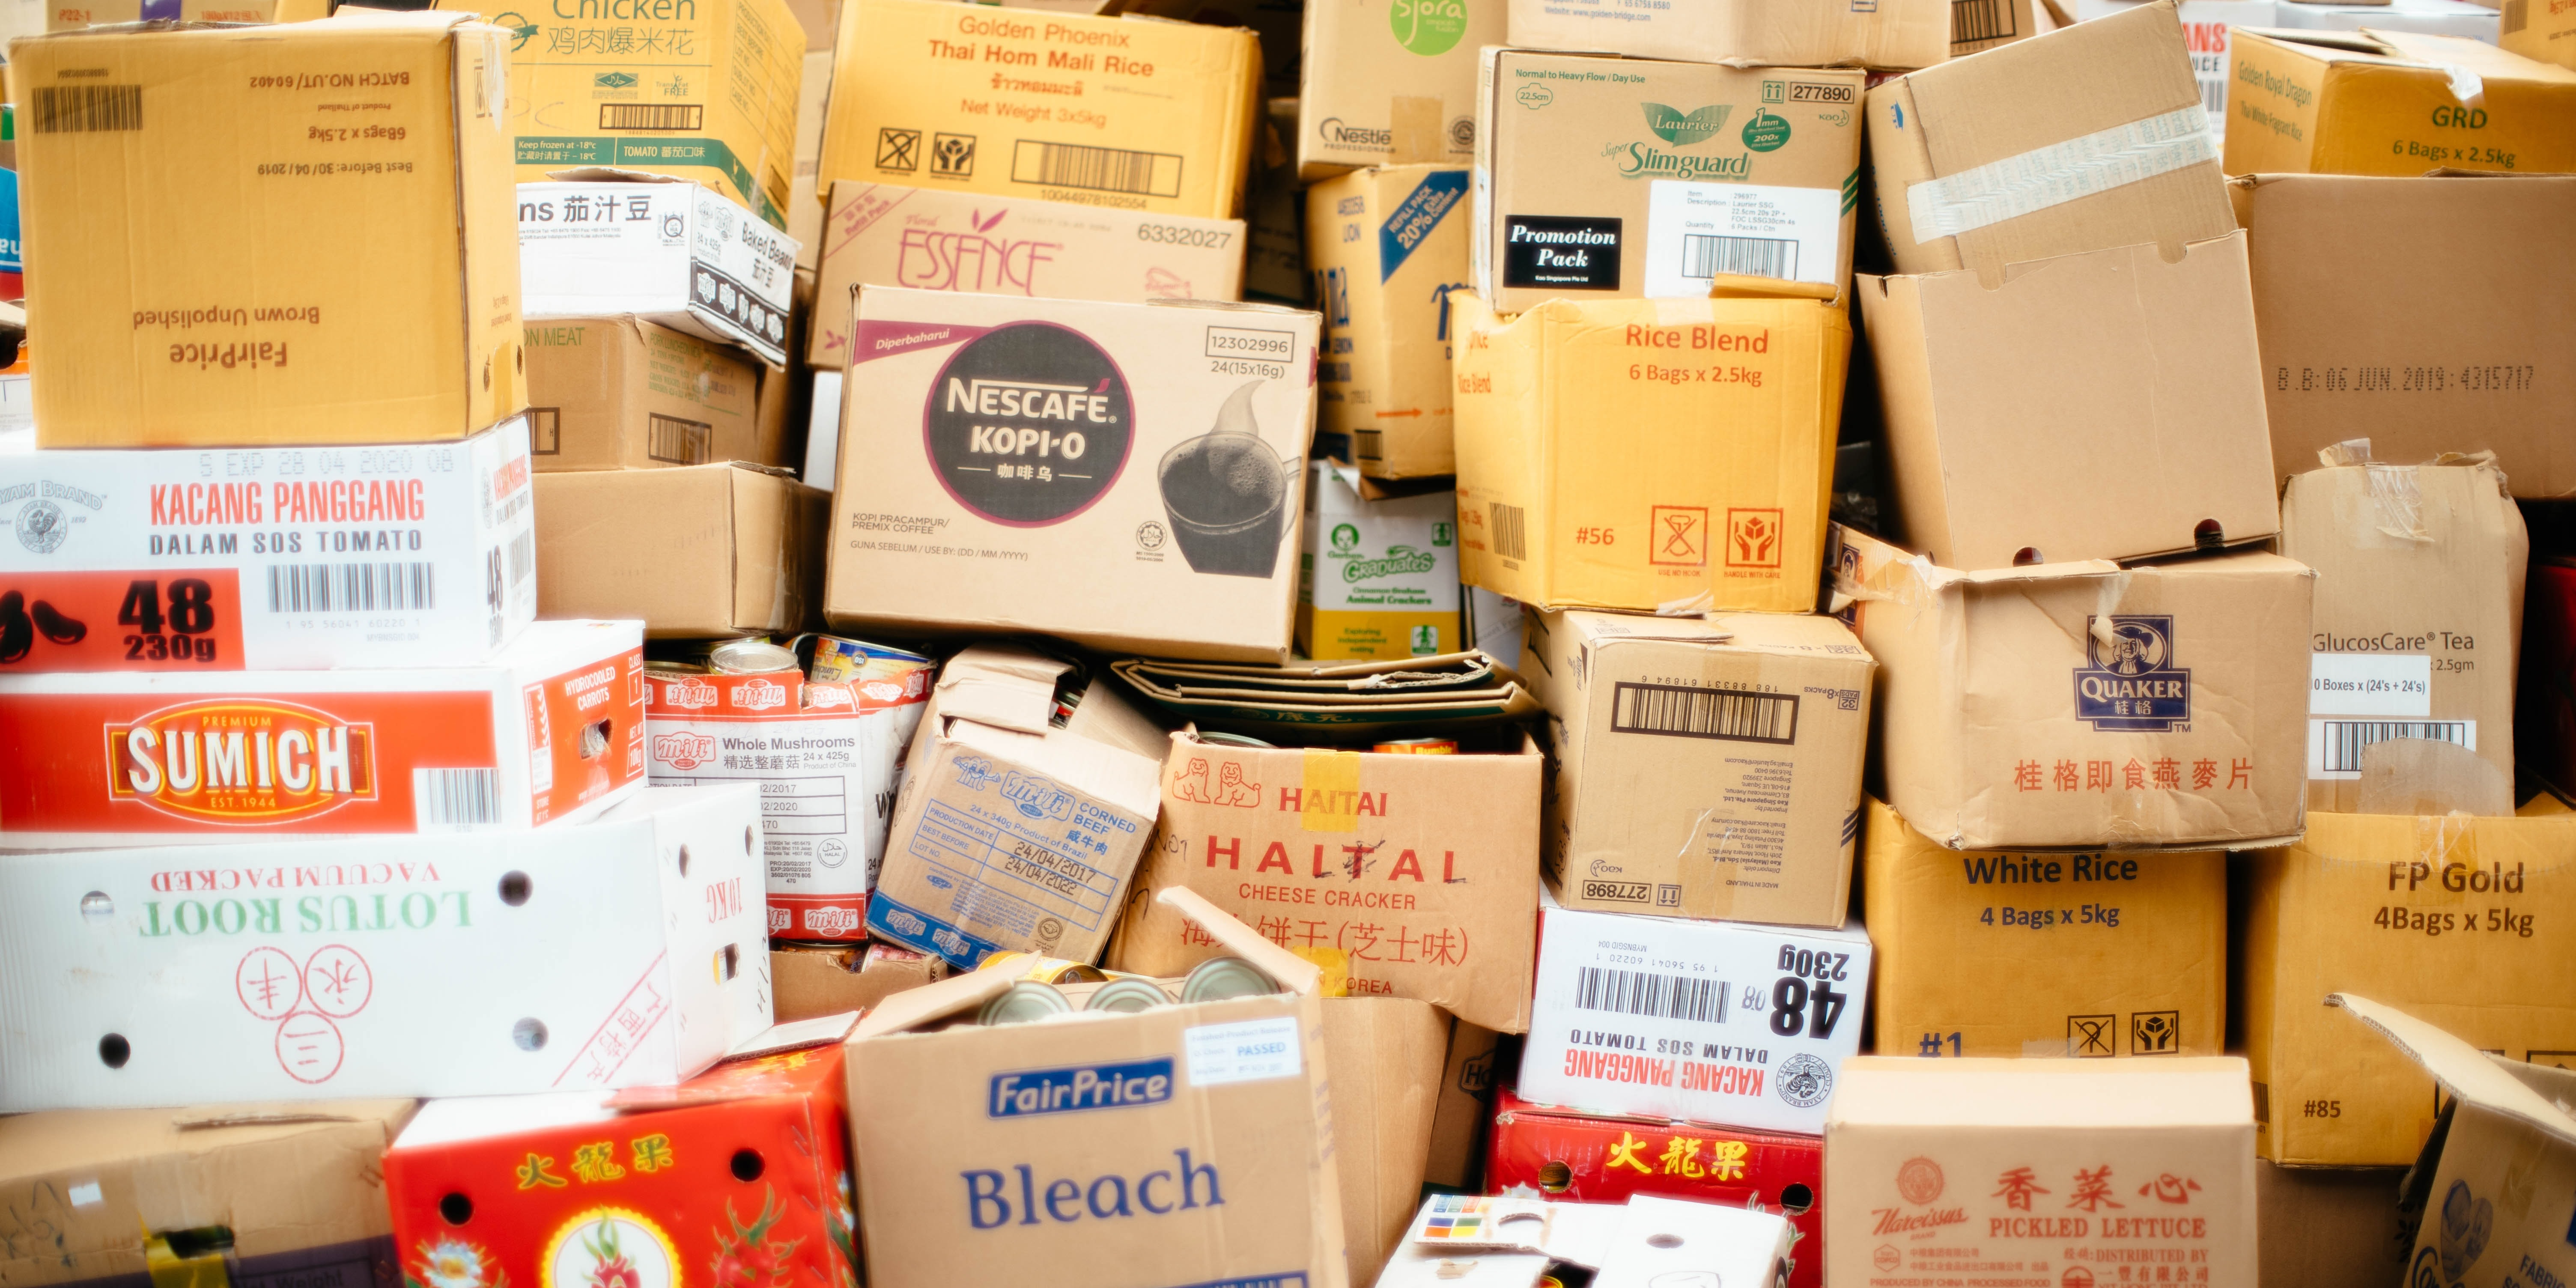 image with packages that have various brand names on them